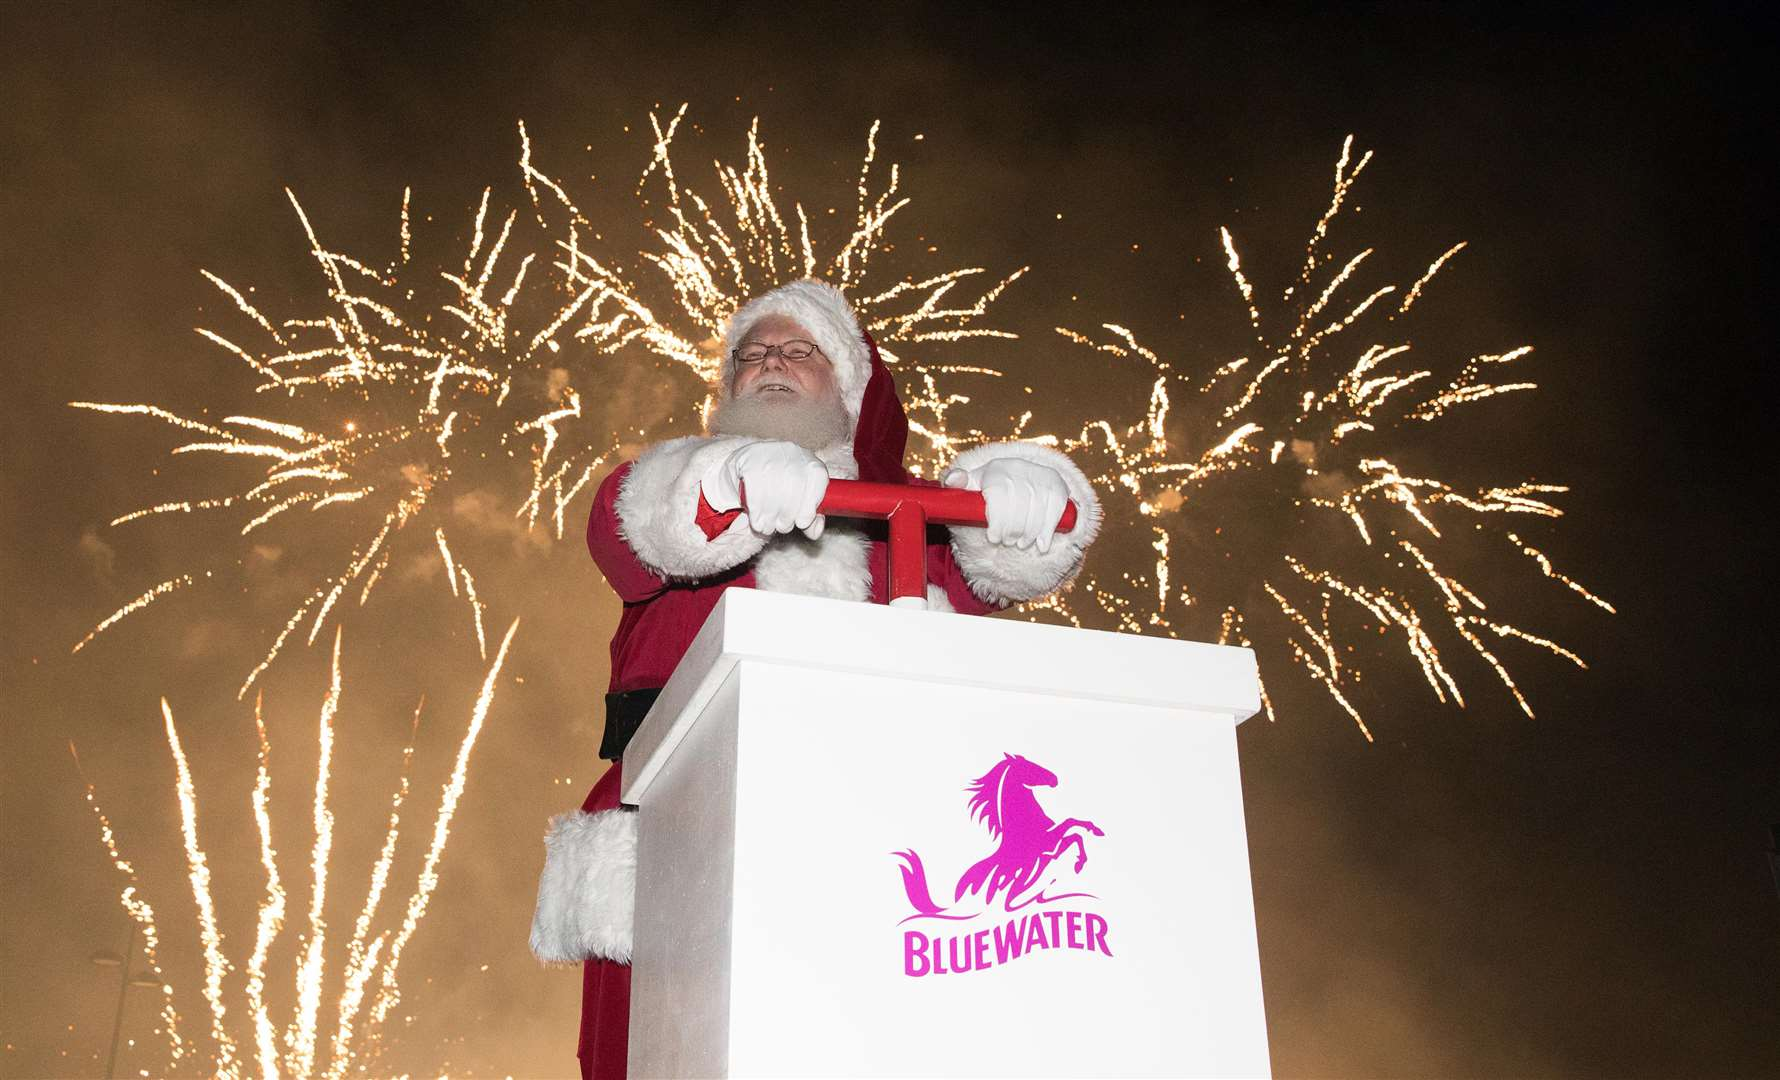 Bluewater's Light Night kicked off the festive countdown